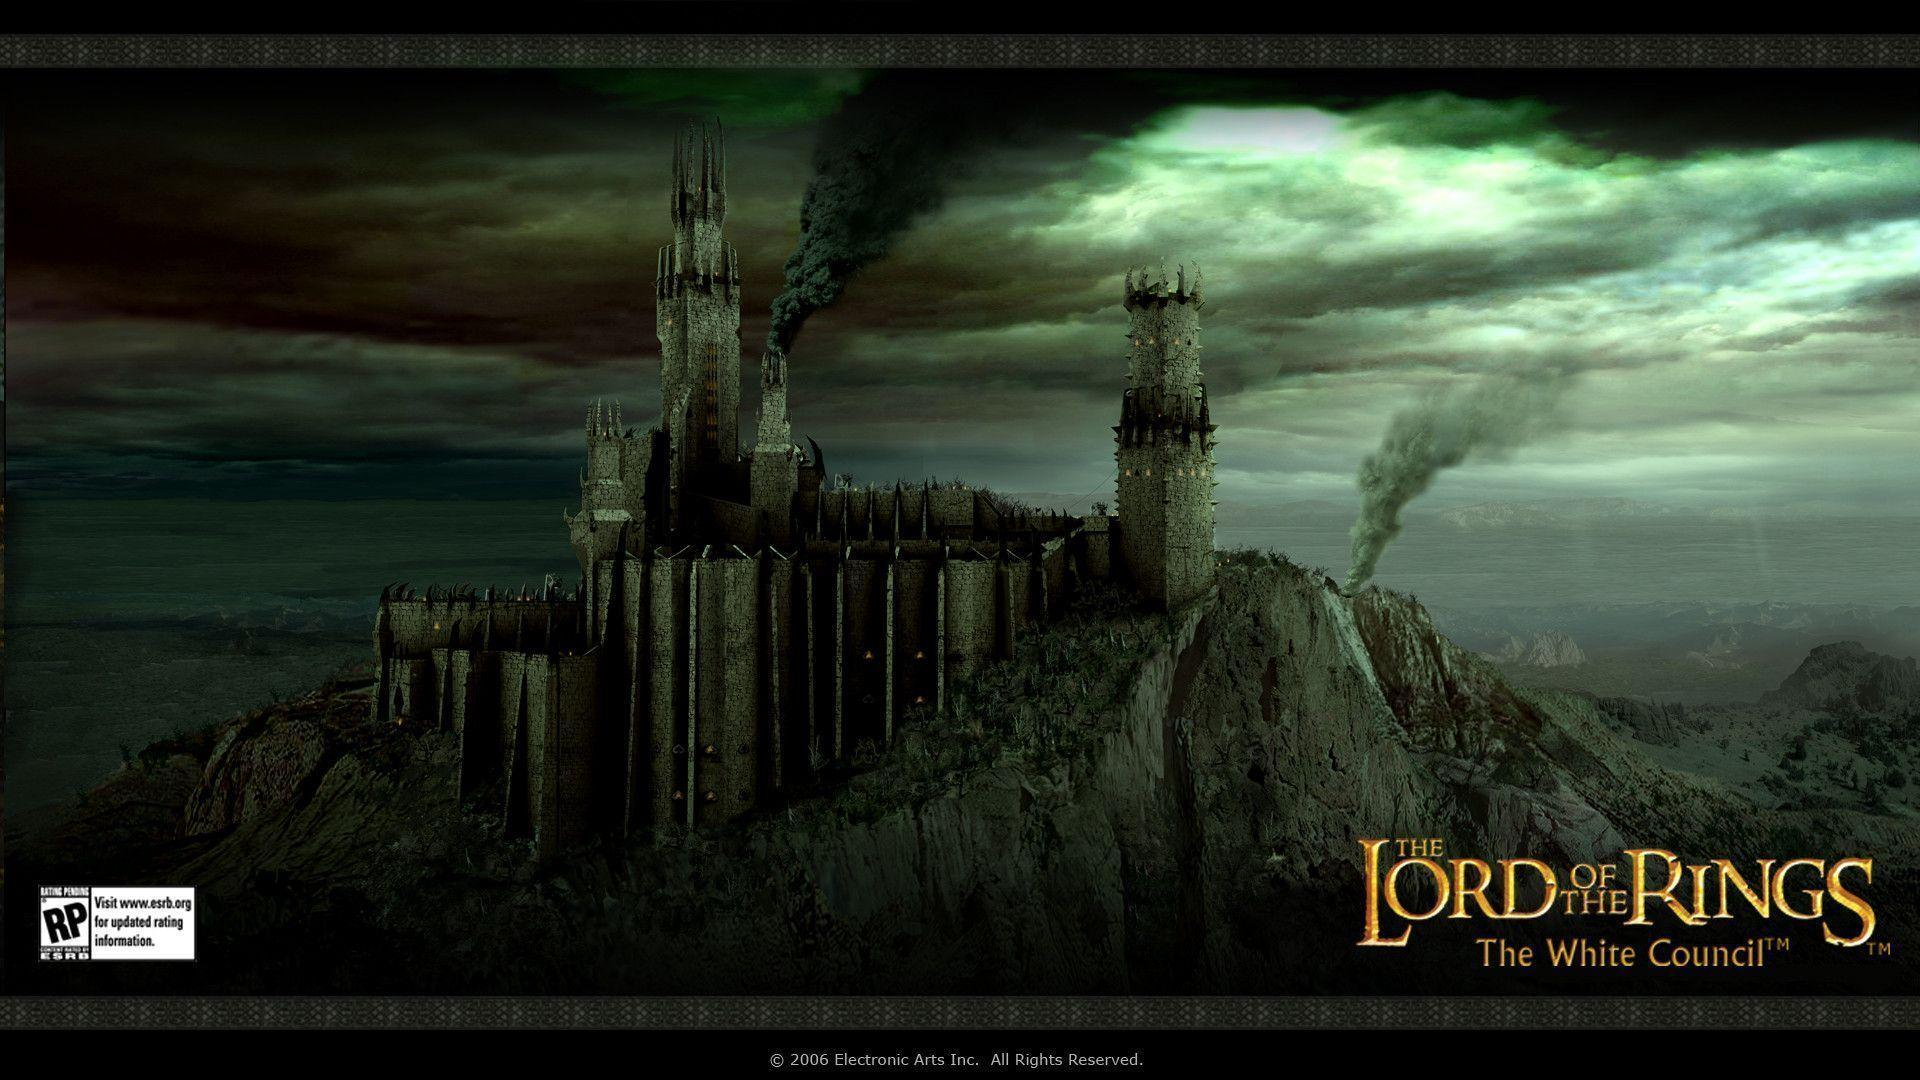 Lord Of The Rings Hd Wallpapers  Wallpaper Cave